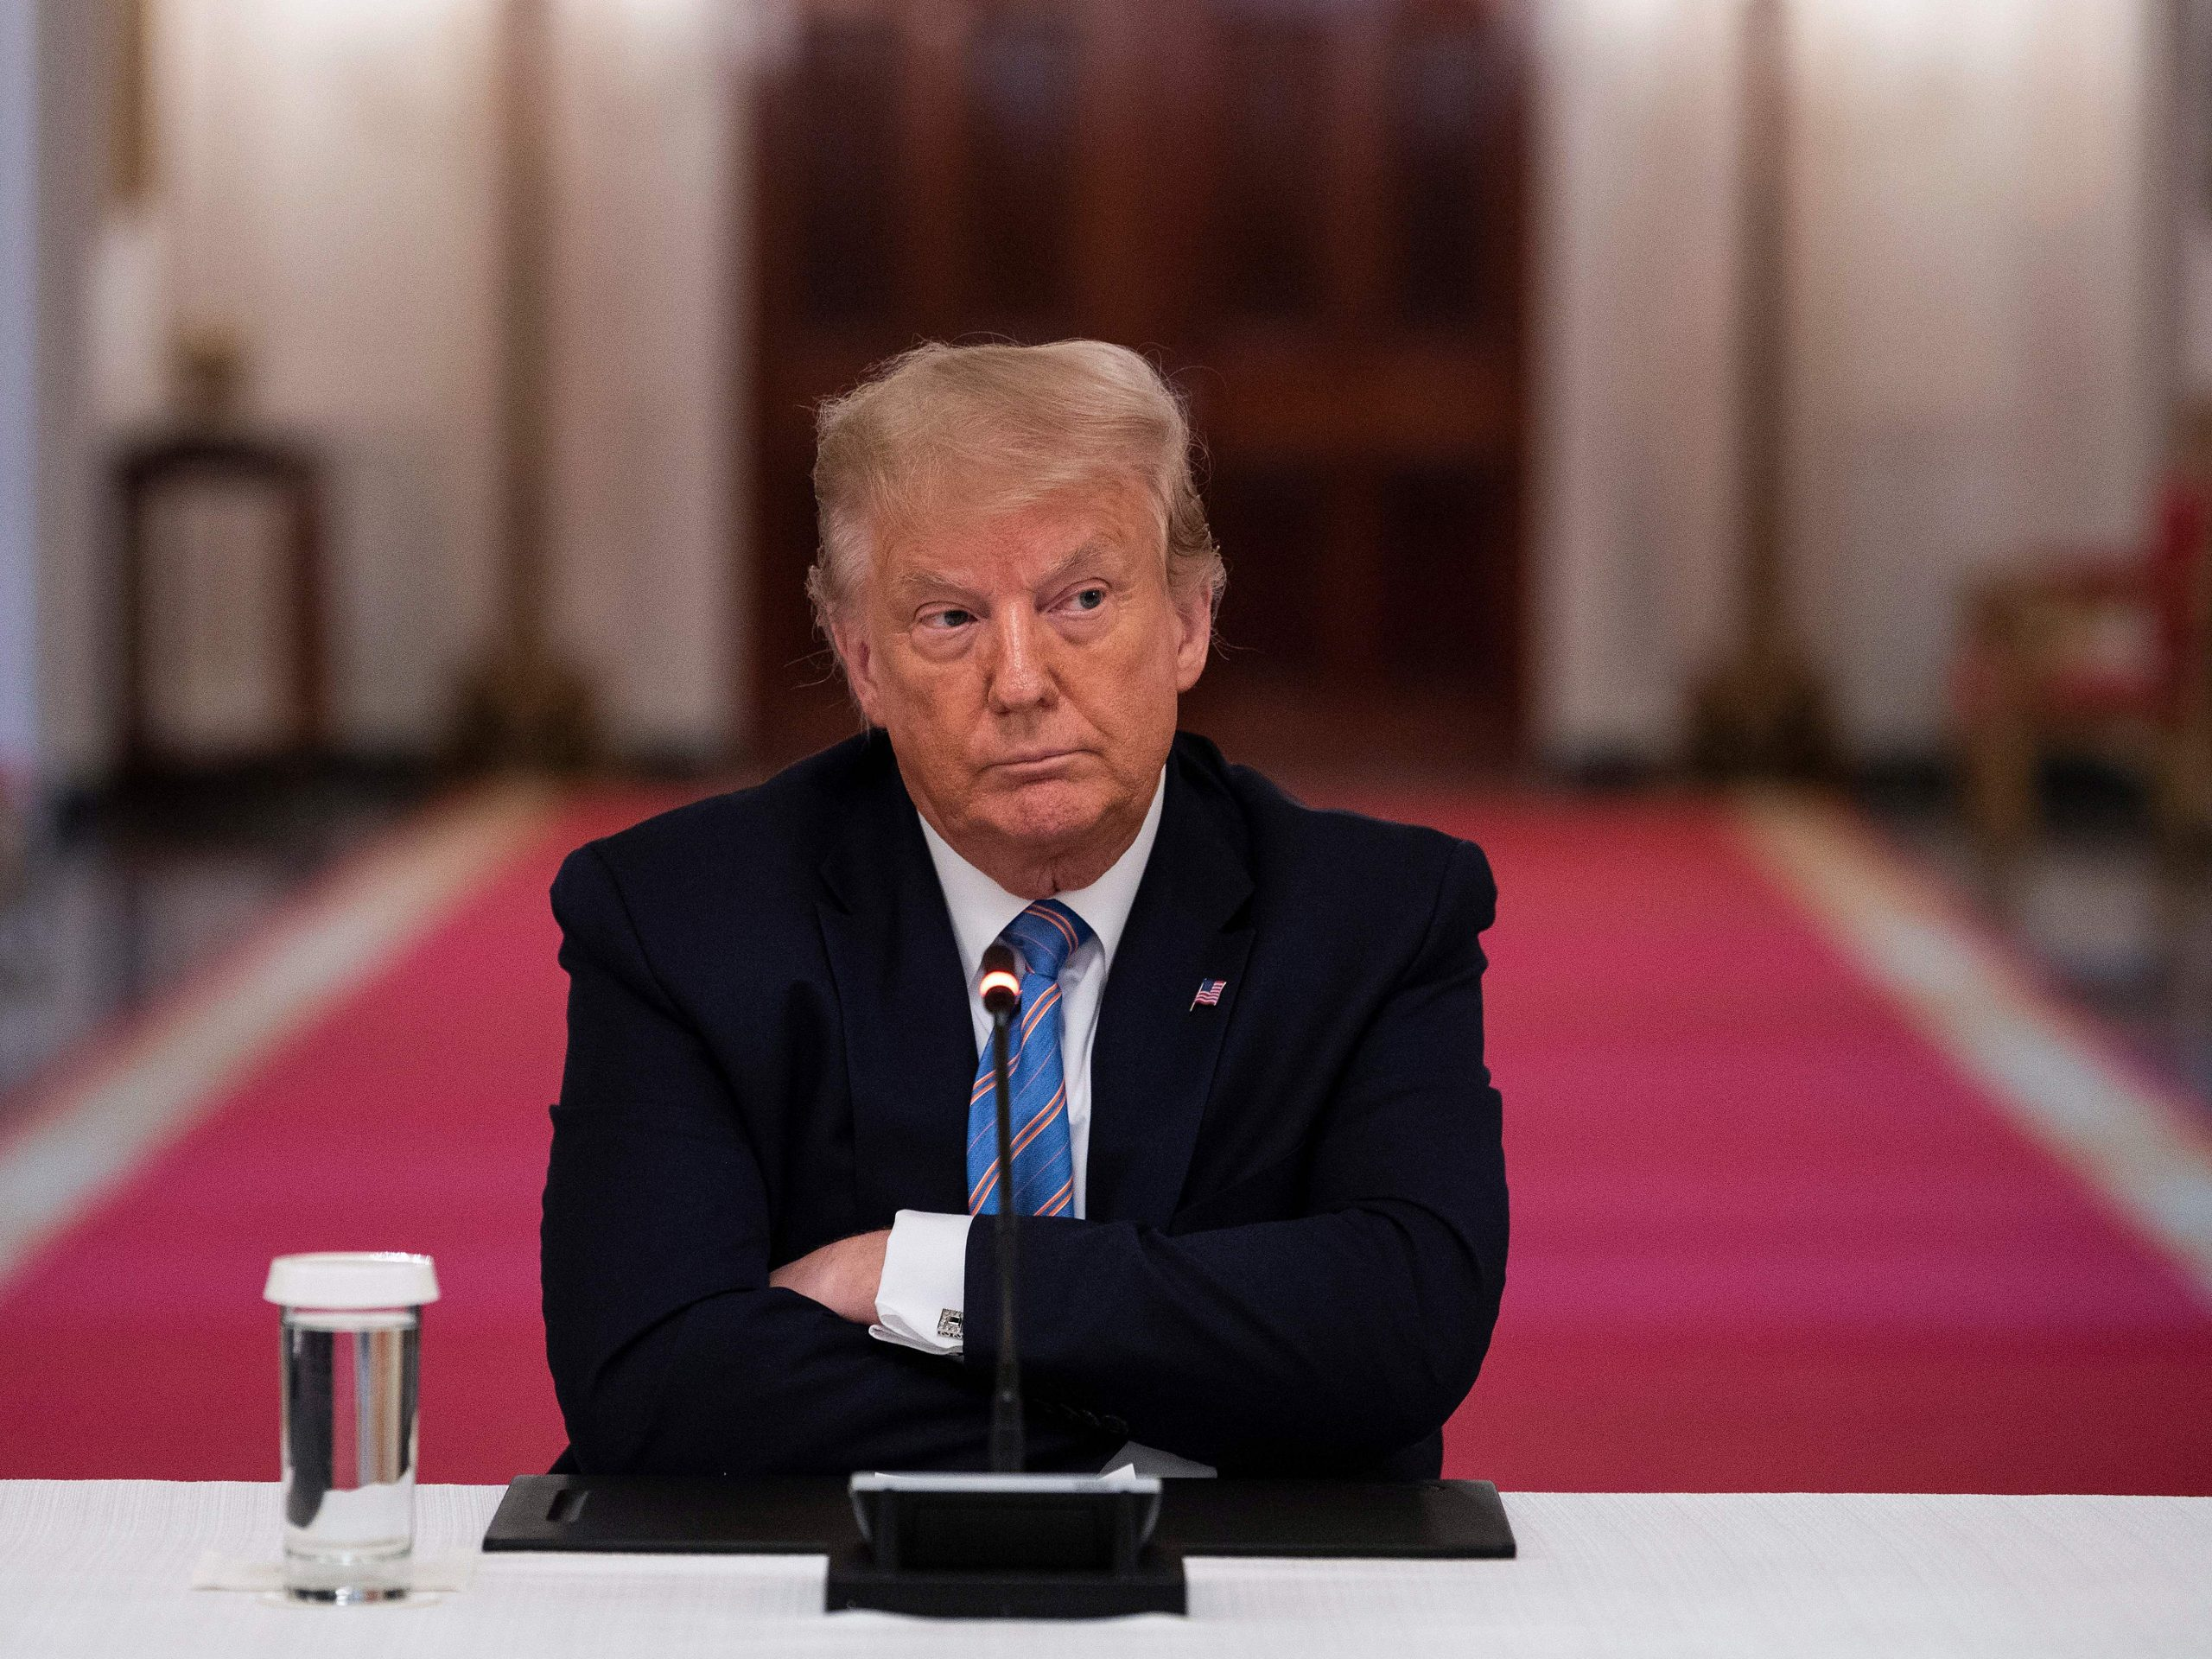 """President Trump participates in a White House event Tuesday on how to reopen schools safely. After insisting that the Republican National Convention should be in person with thousands of people, Trump said he is """"flexible"""" about the format."""